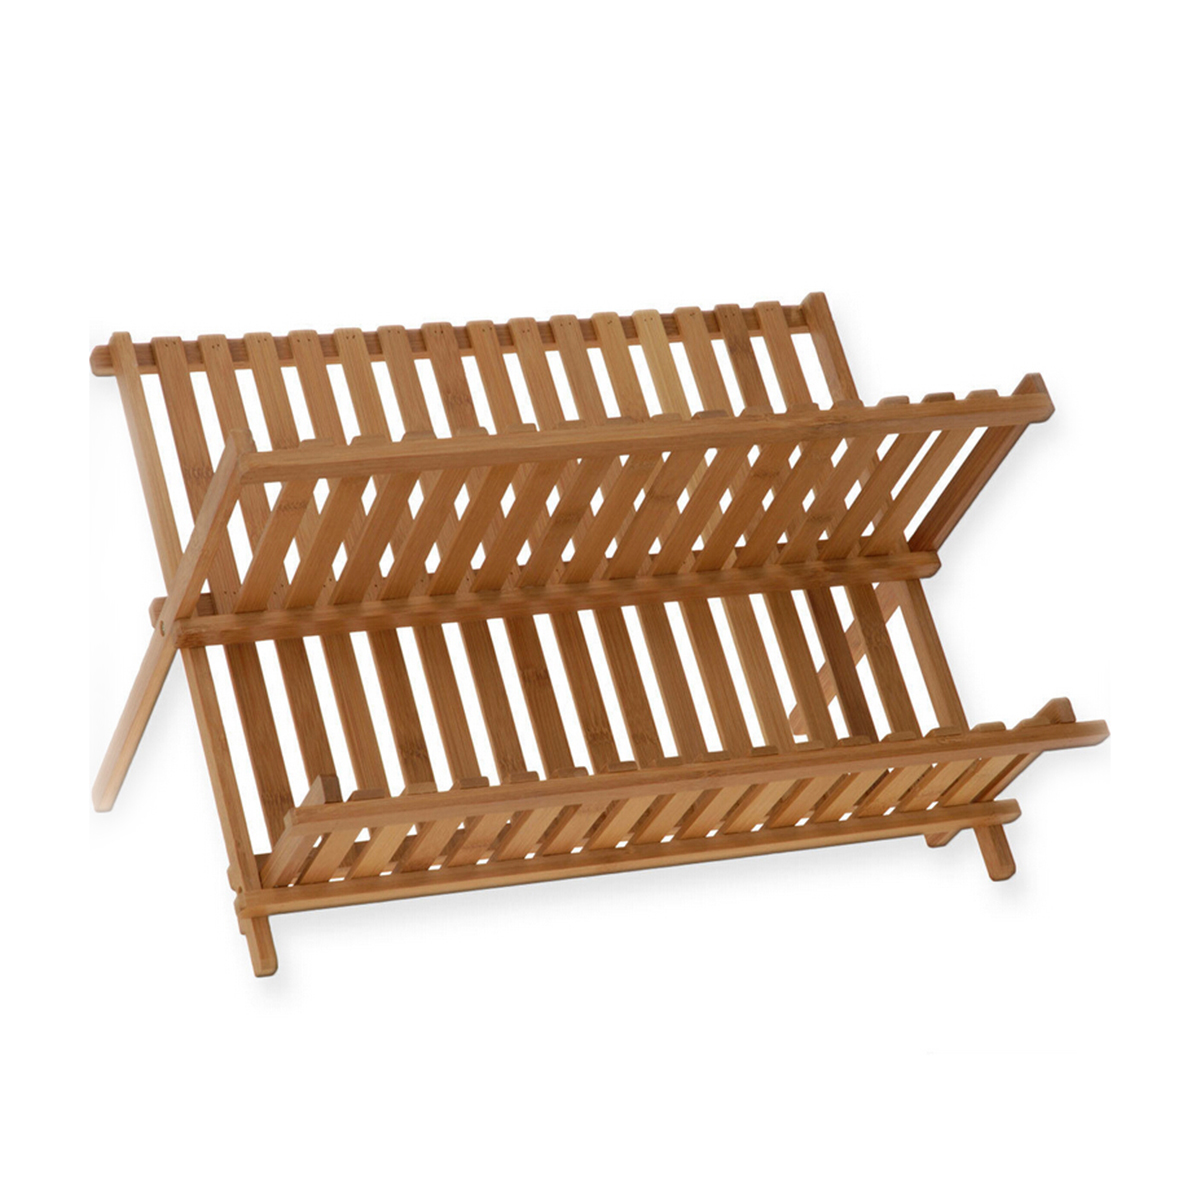 Natural Bamboo Dish Drying Rack Flatware Holder Plate Storage Holder Plate Wooden Flatware Foldable Dish Rack  sc 1 st  AliExpress.com & Natural Bamboo Dish Drying Rack Flatware Holder Plate Storage ...